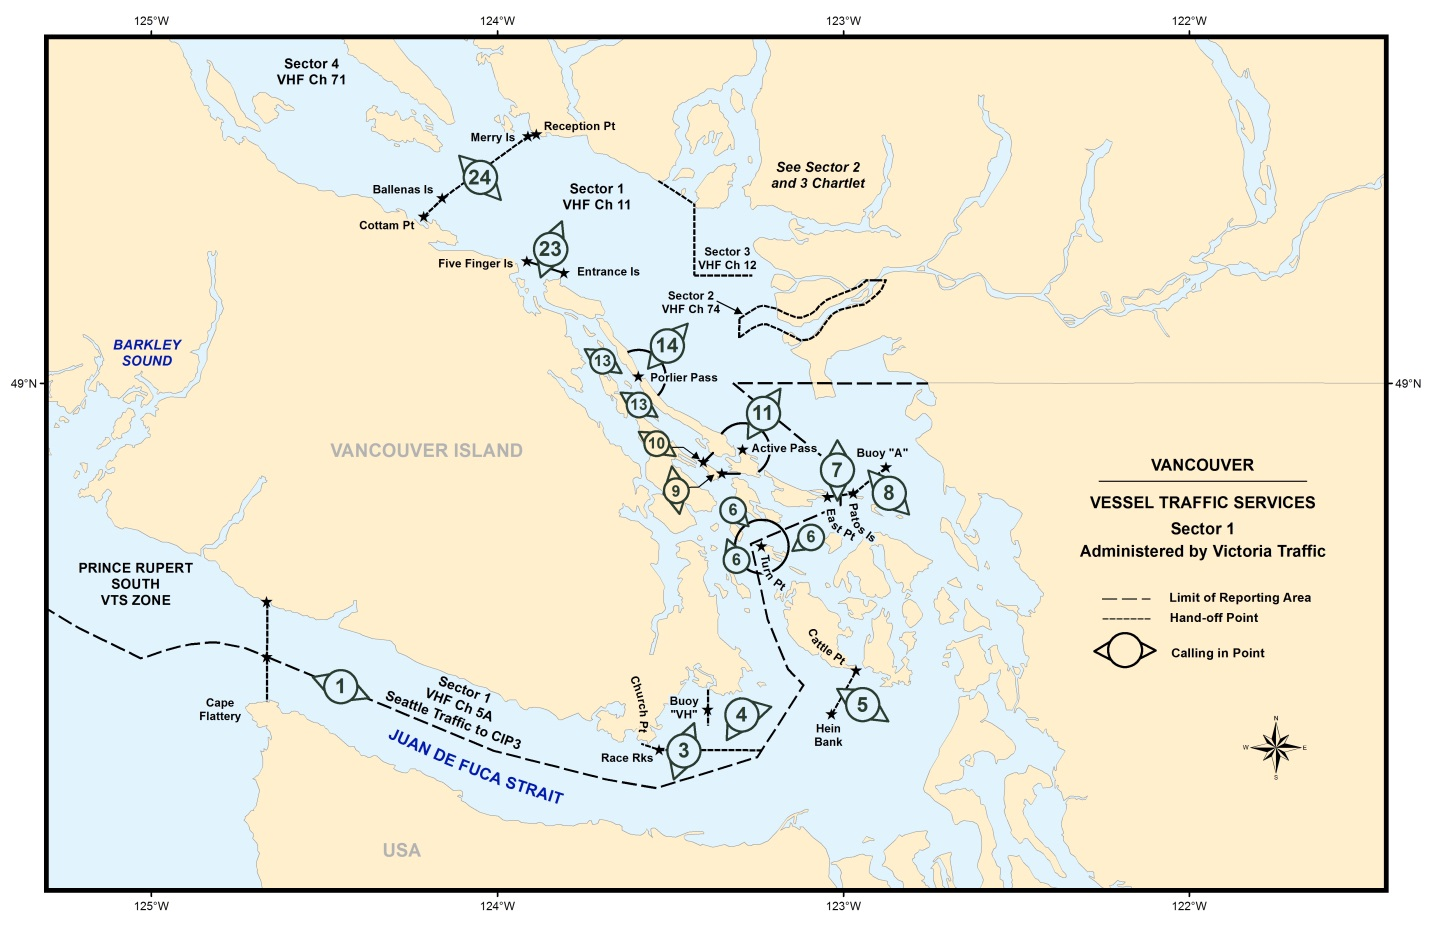 Vessel Traffic Services - Vancouver - Sector 1